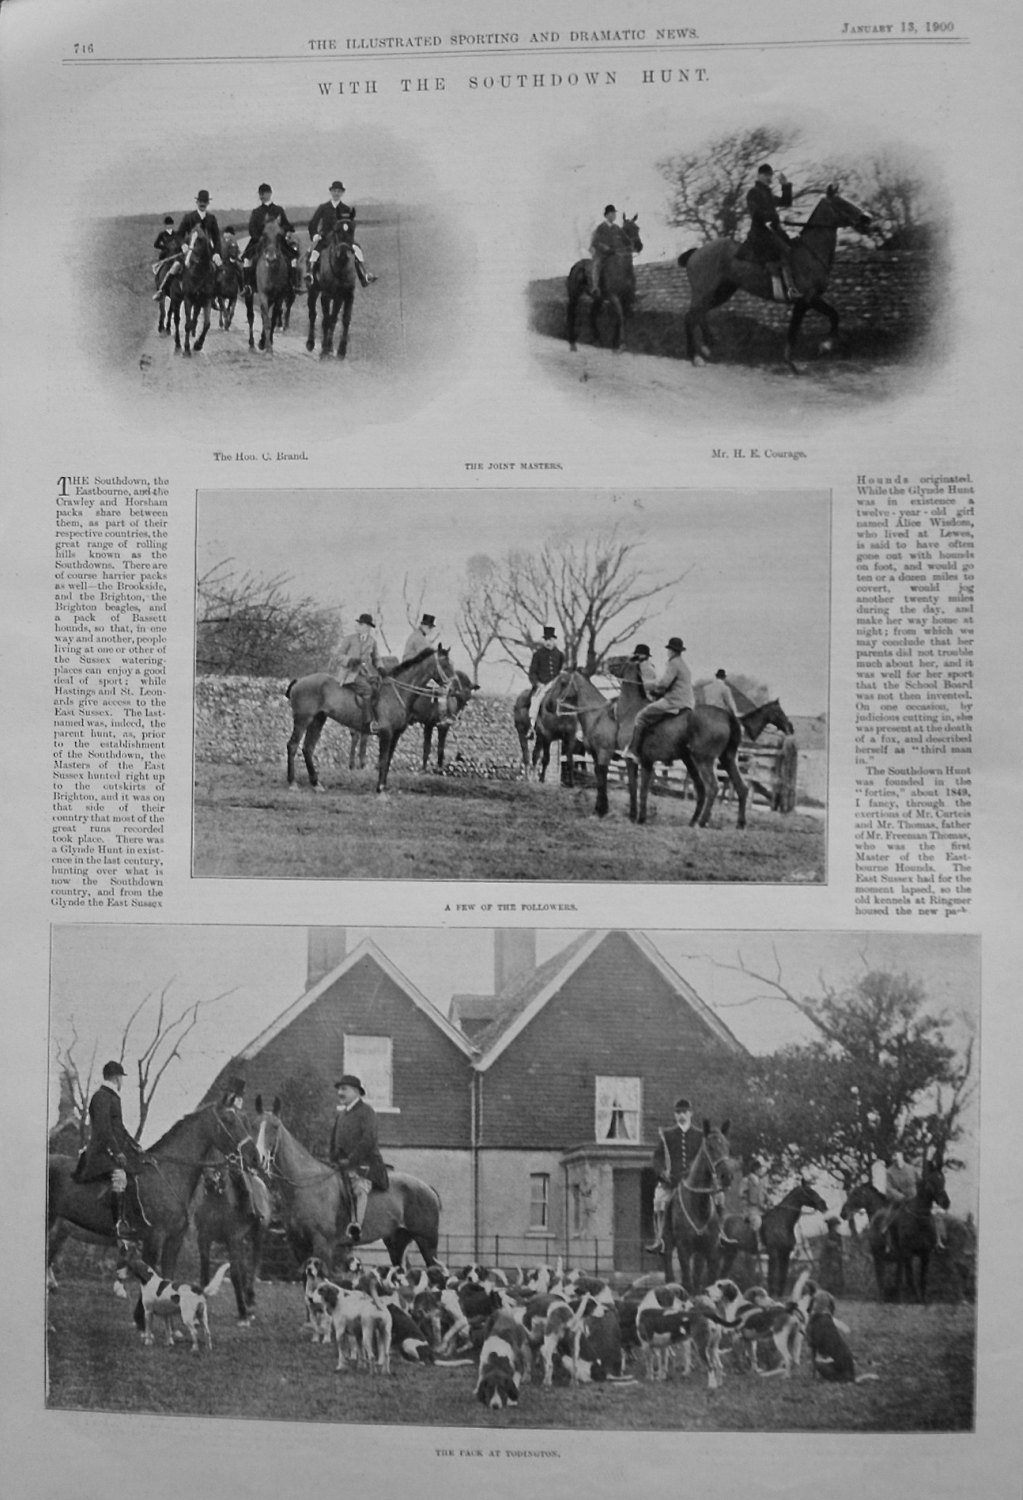 With the Southdown Hunt. 1900